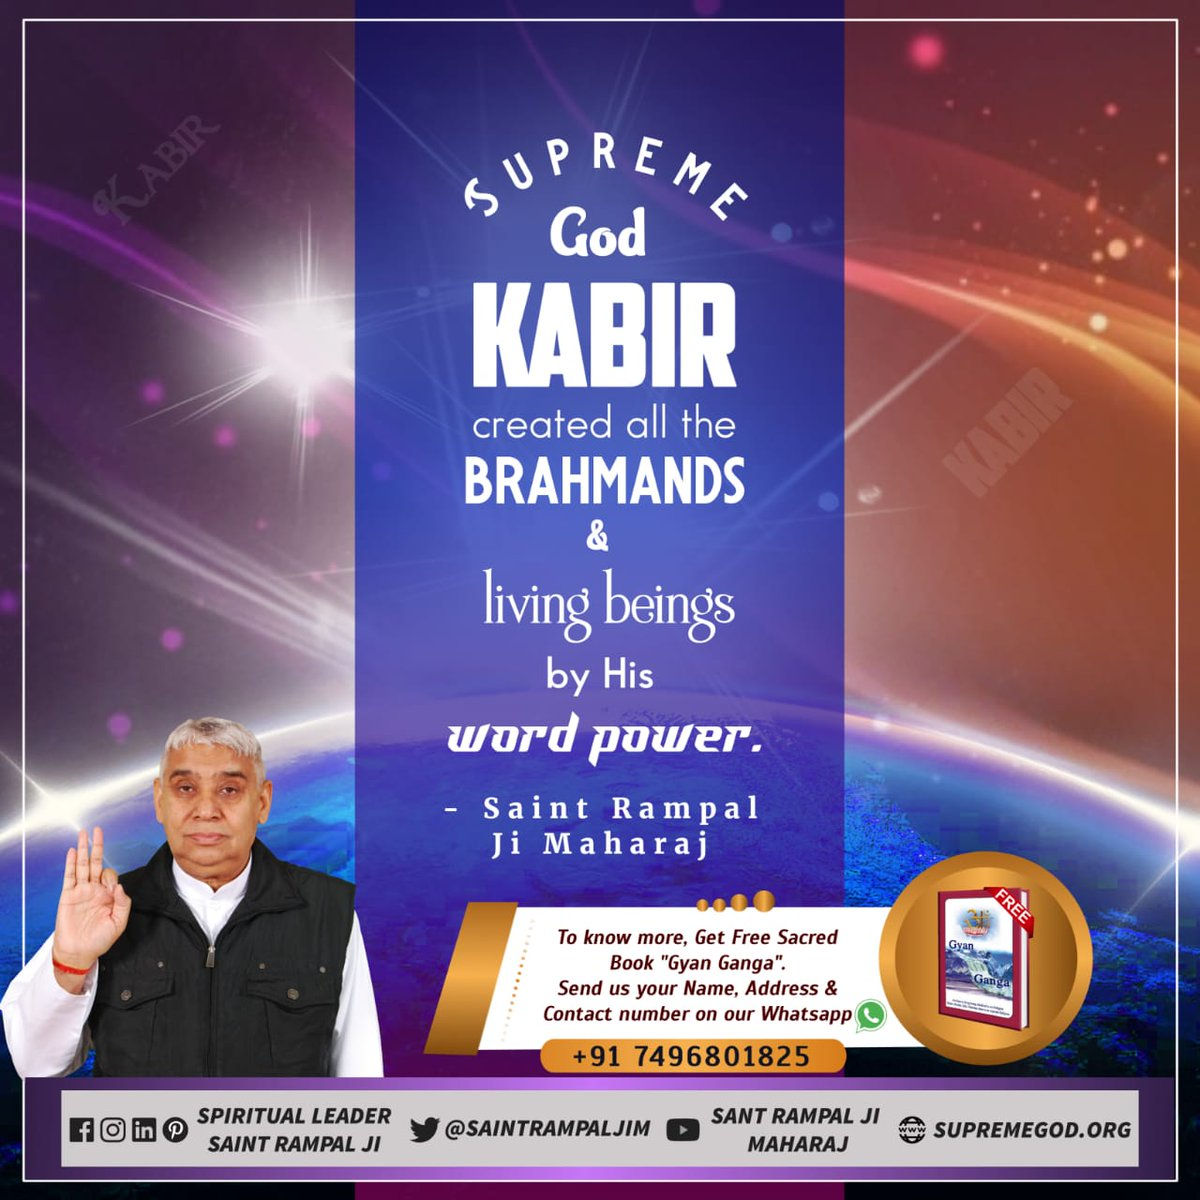 @SaintRampalJiM Creation of Nature In the beginning, there was only one place called Anami Lok. God Kabir then created three other lower Loks (places), namely Agam Lok, Alakh Lok & Satlok with the power of word. - Sant Rampal Ji Maharaj #WhoCreatedNature https://t.co/TrogbhkggH